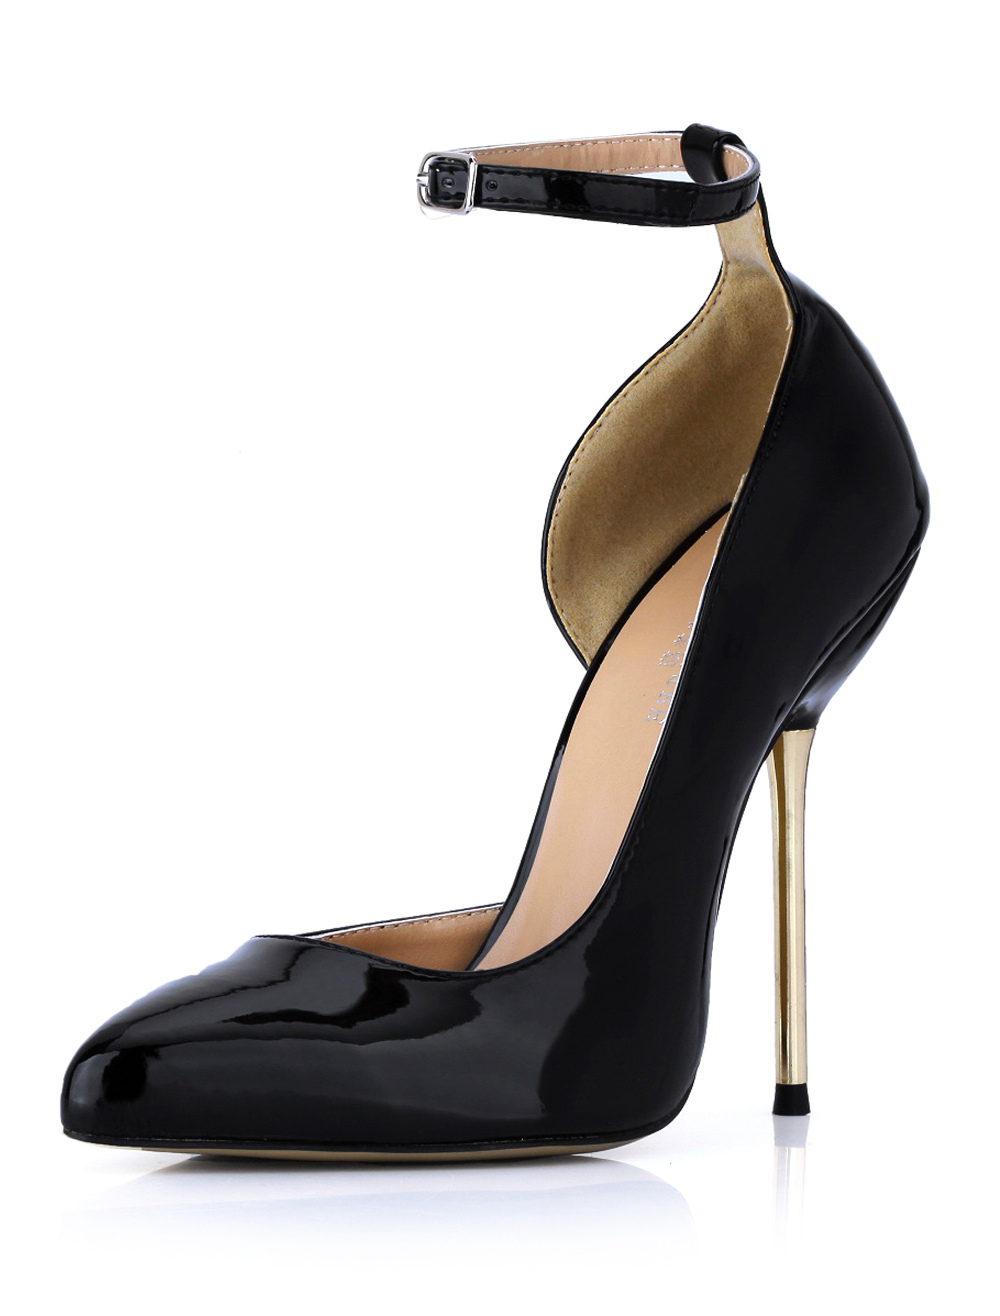 a2d9cfef11a529 Black Stiletto Heel Ankle Strap Patent Leather Woman s High Heels -  Milanoo.com